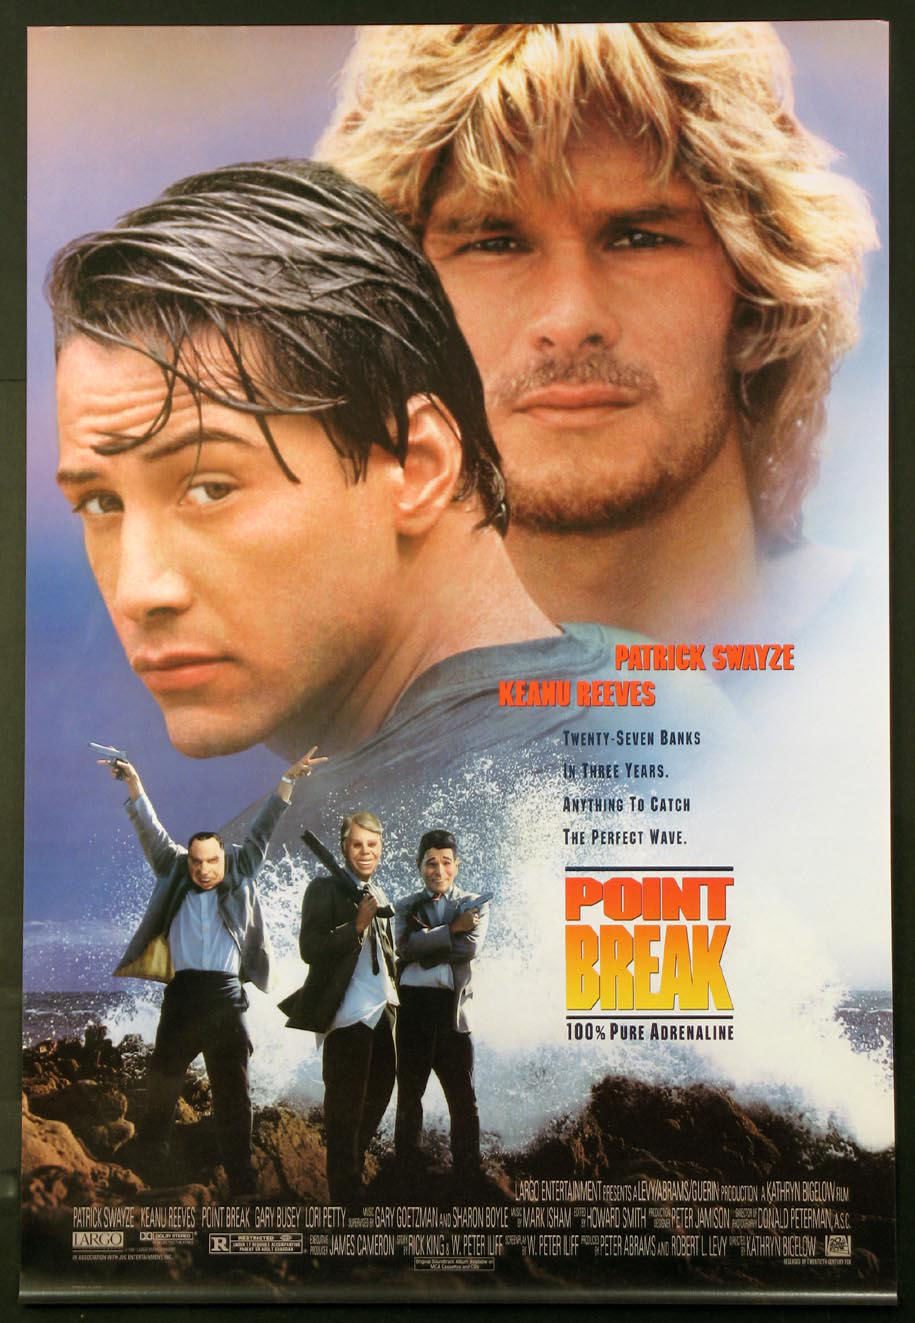 POINT BREAK @ FilmPosters.com